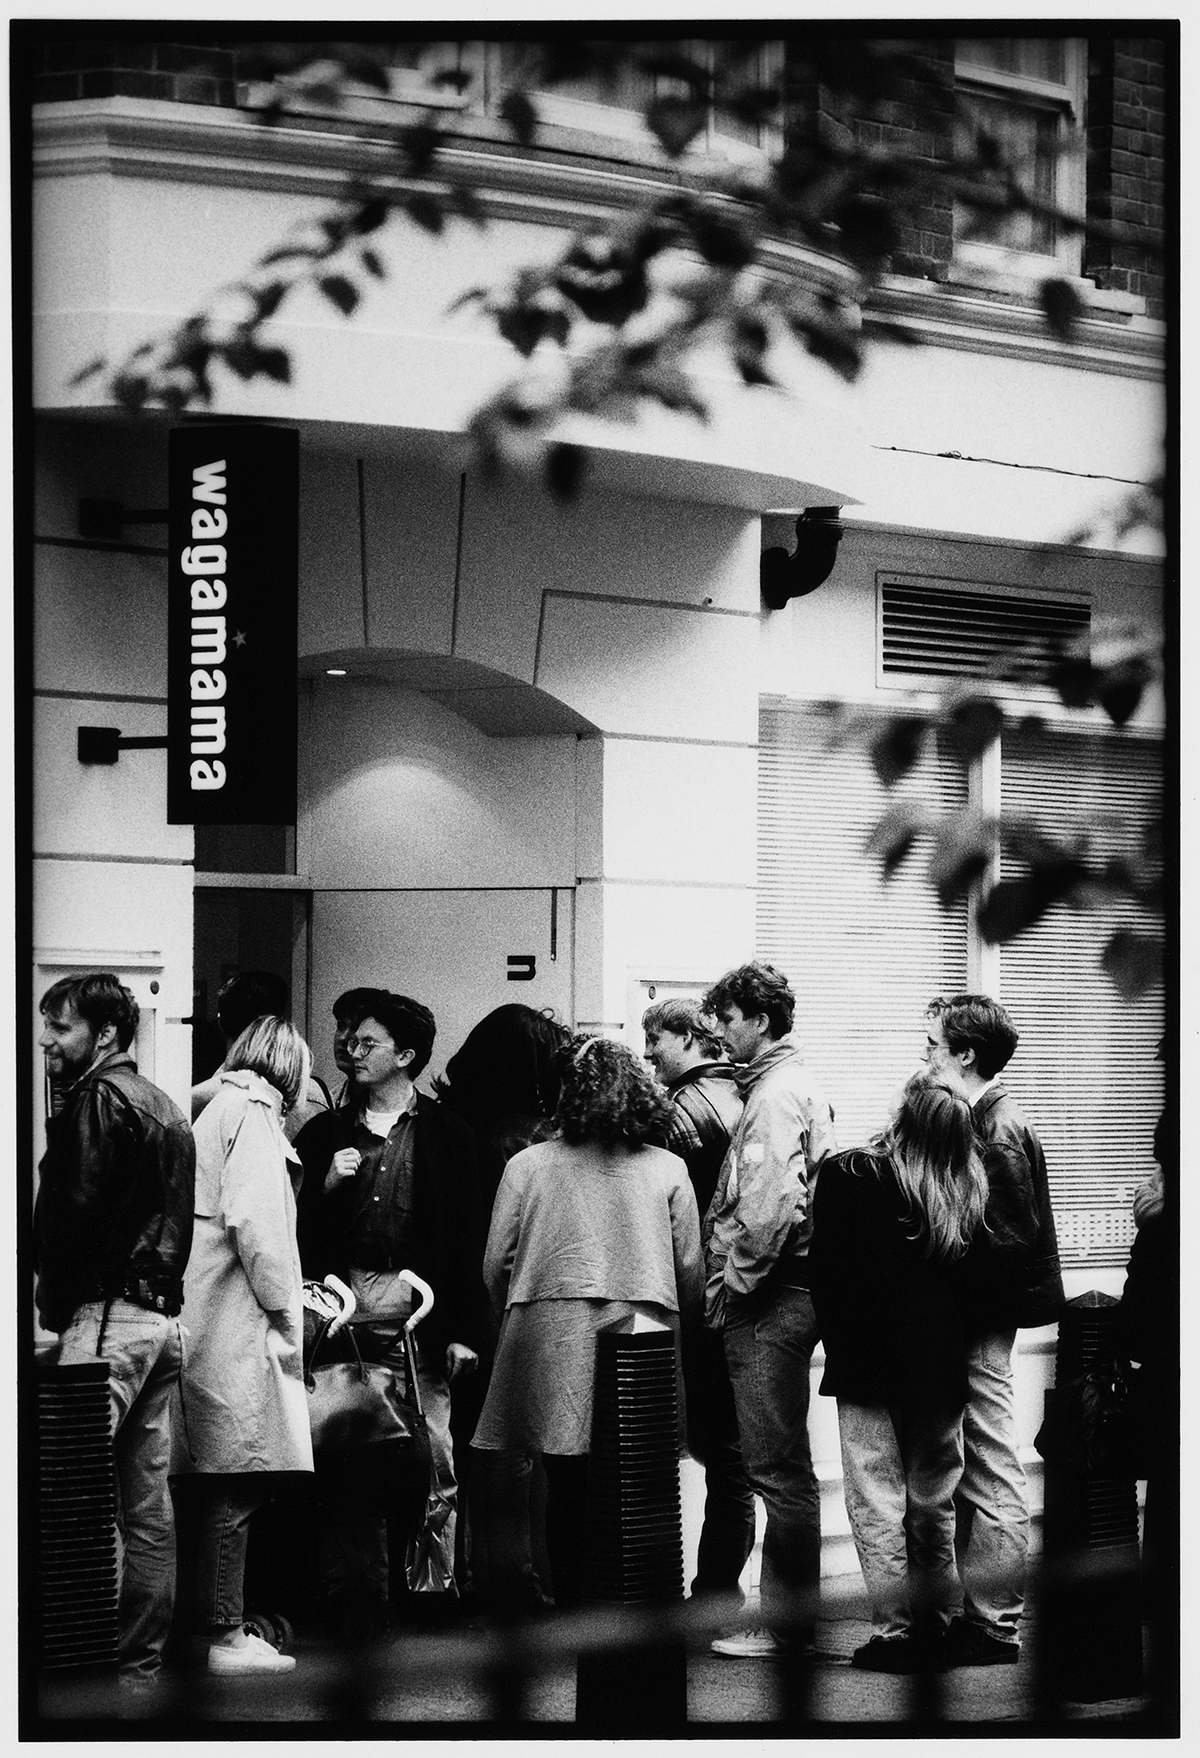 Diners queueing up at the opening of Wagamama's first restaurant in Bloomsbury in 1992. Images courtesy of Wagamama